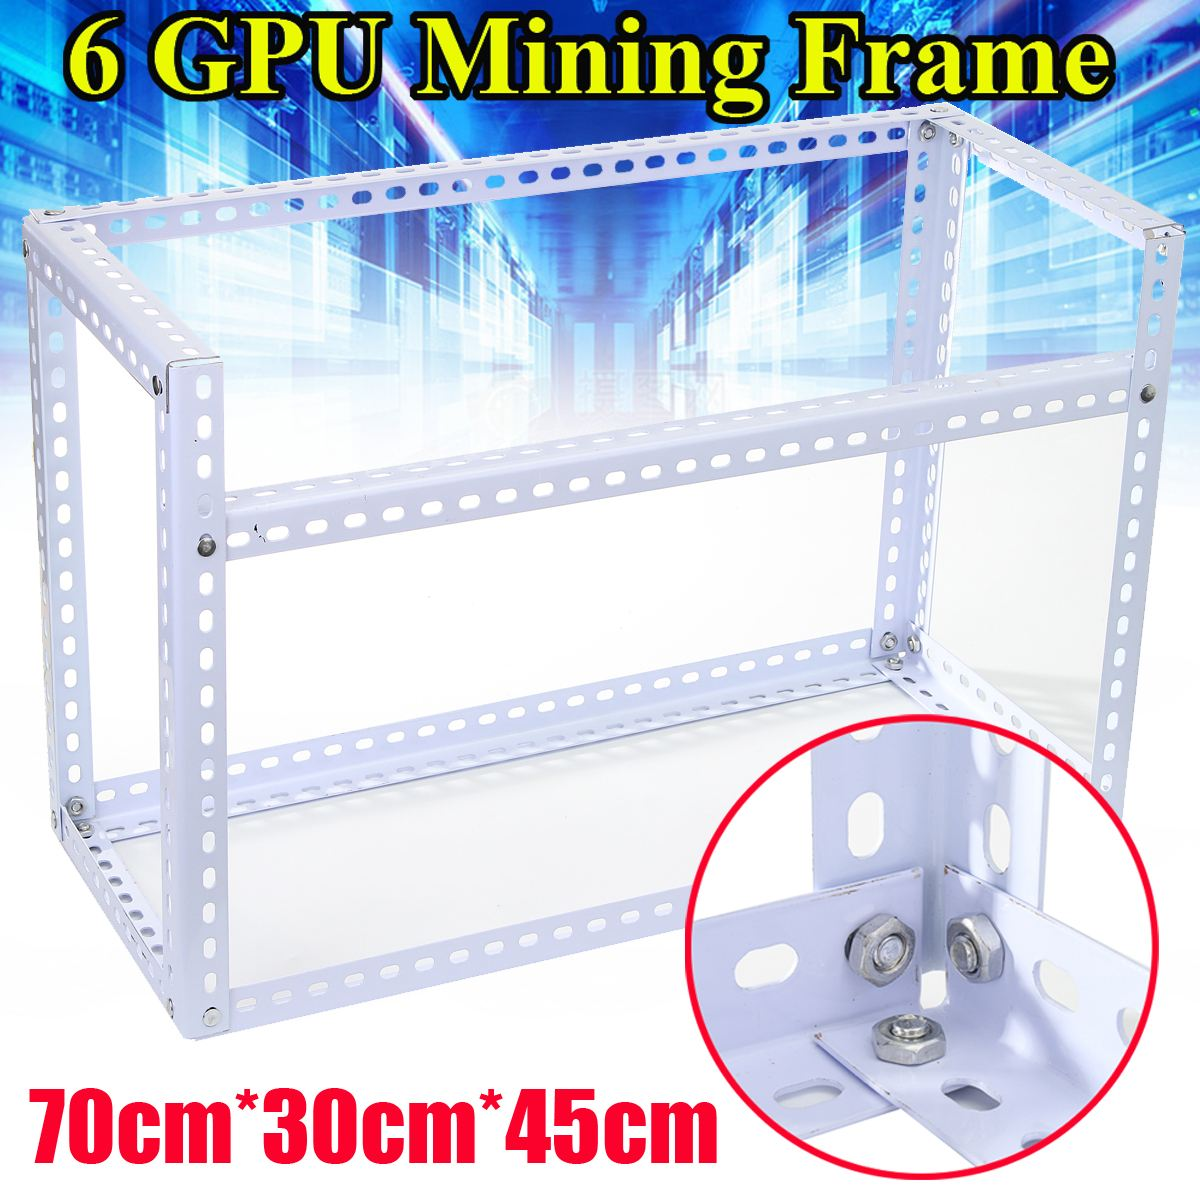 6GPU DIY Steel Stackable Miner Frame Case Mining Rig Frame 70cm*30cm*45cm for Bitcoin BTC Mining Crypto Machine White yunhui used btc miner antminer s5 1150g 28nm bm1384 bitcoin mining machine asic miner with power supply ship by dhl or spsr